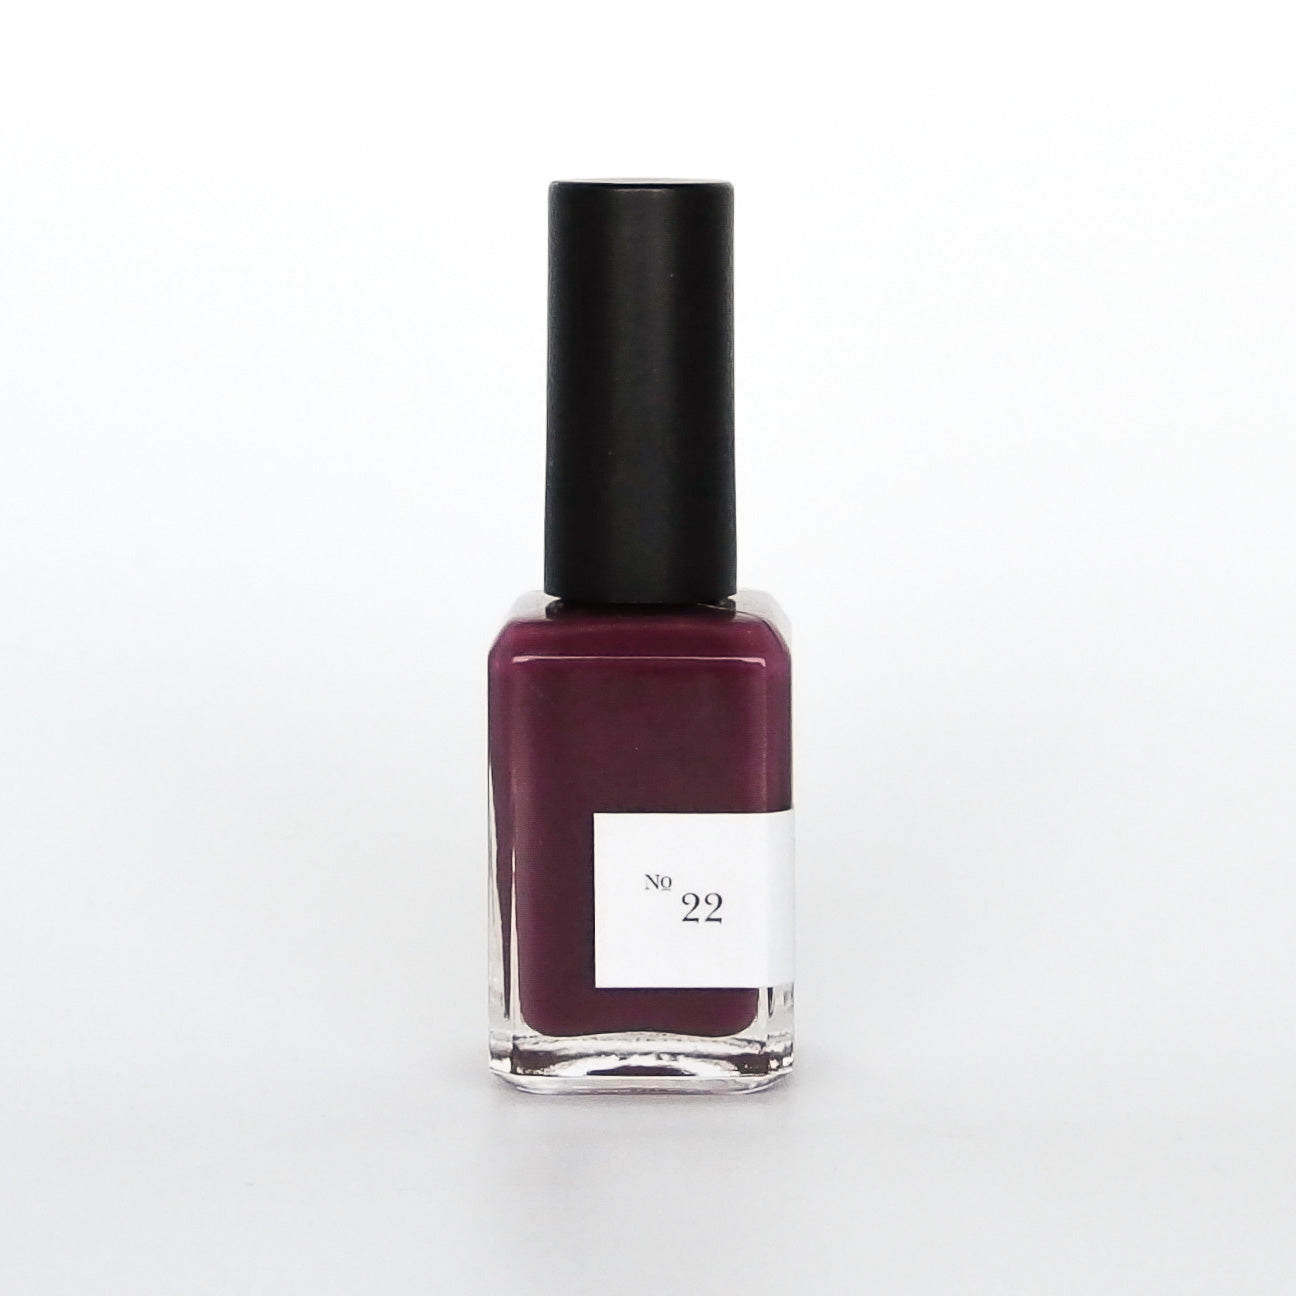 Sundays Nail Lacquer No.22, Nails, Sundays - Astrid Wylde